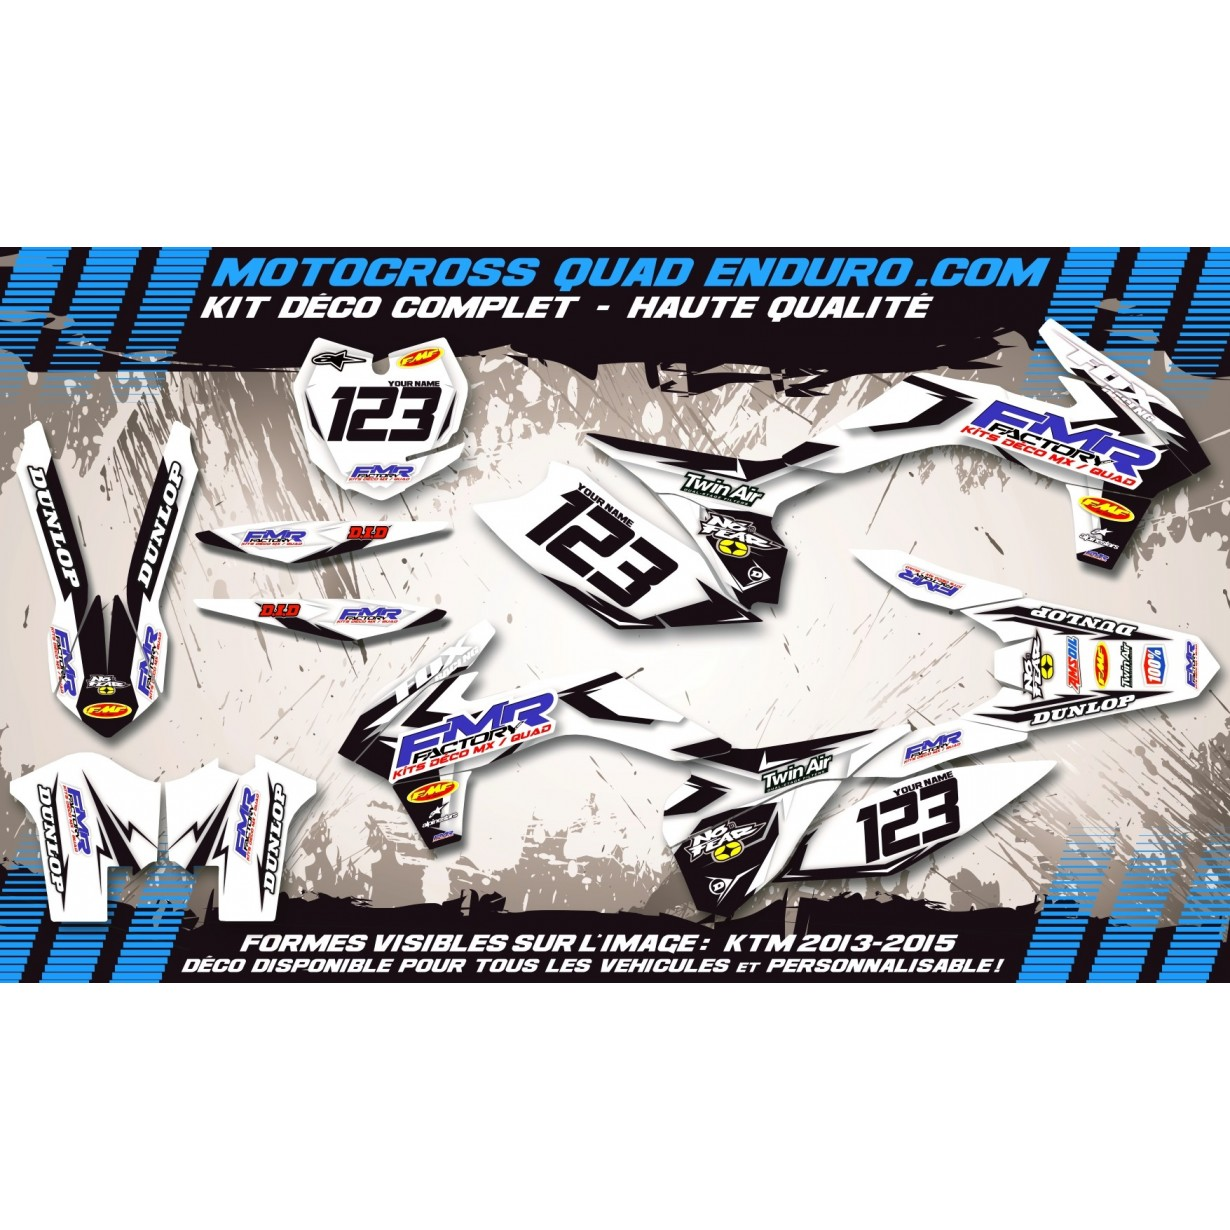 KIT DÉCO Perso MX 08-14 (4t) Fmr factory WT Edition MA13WT